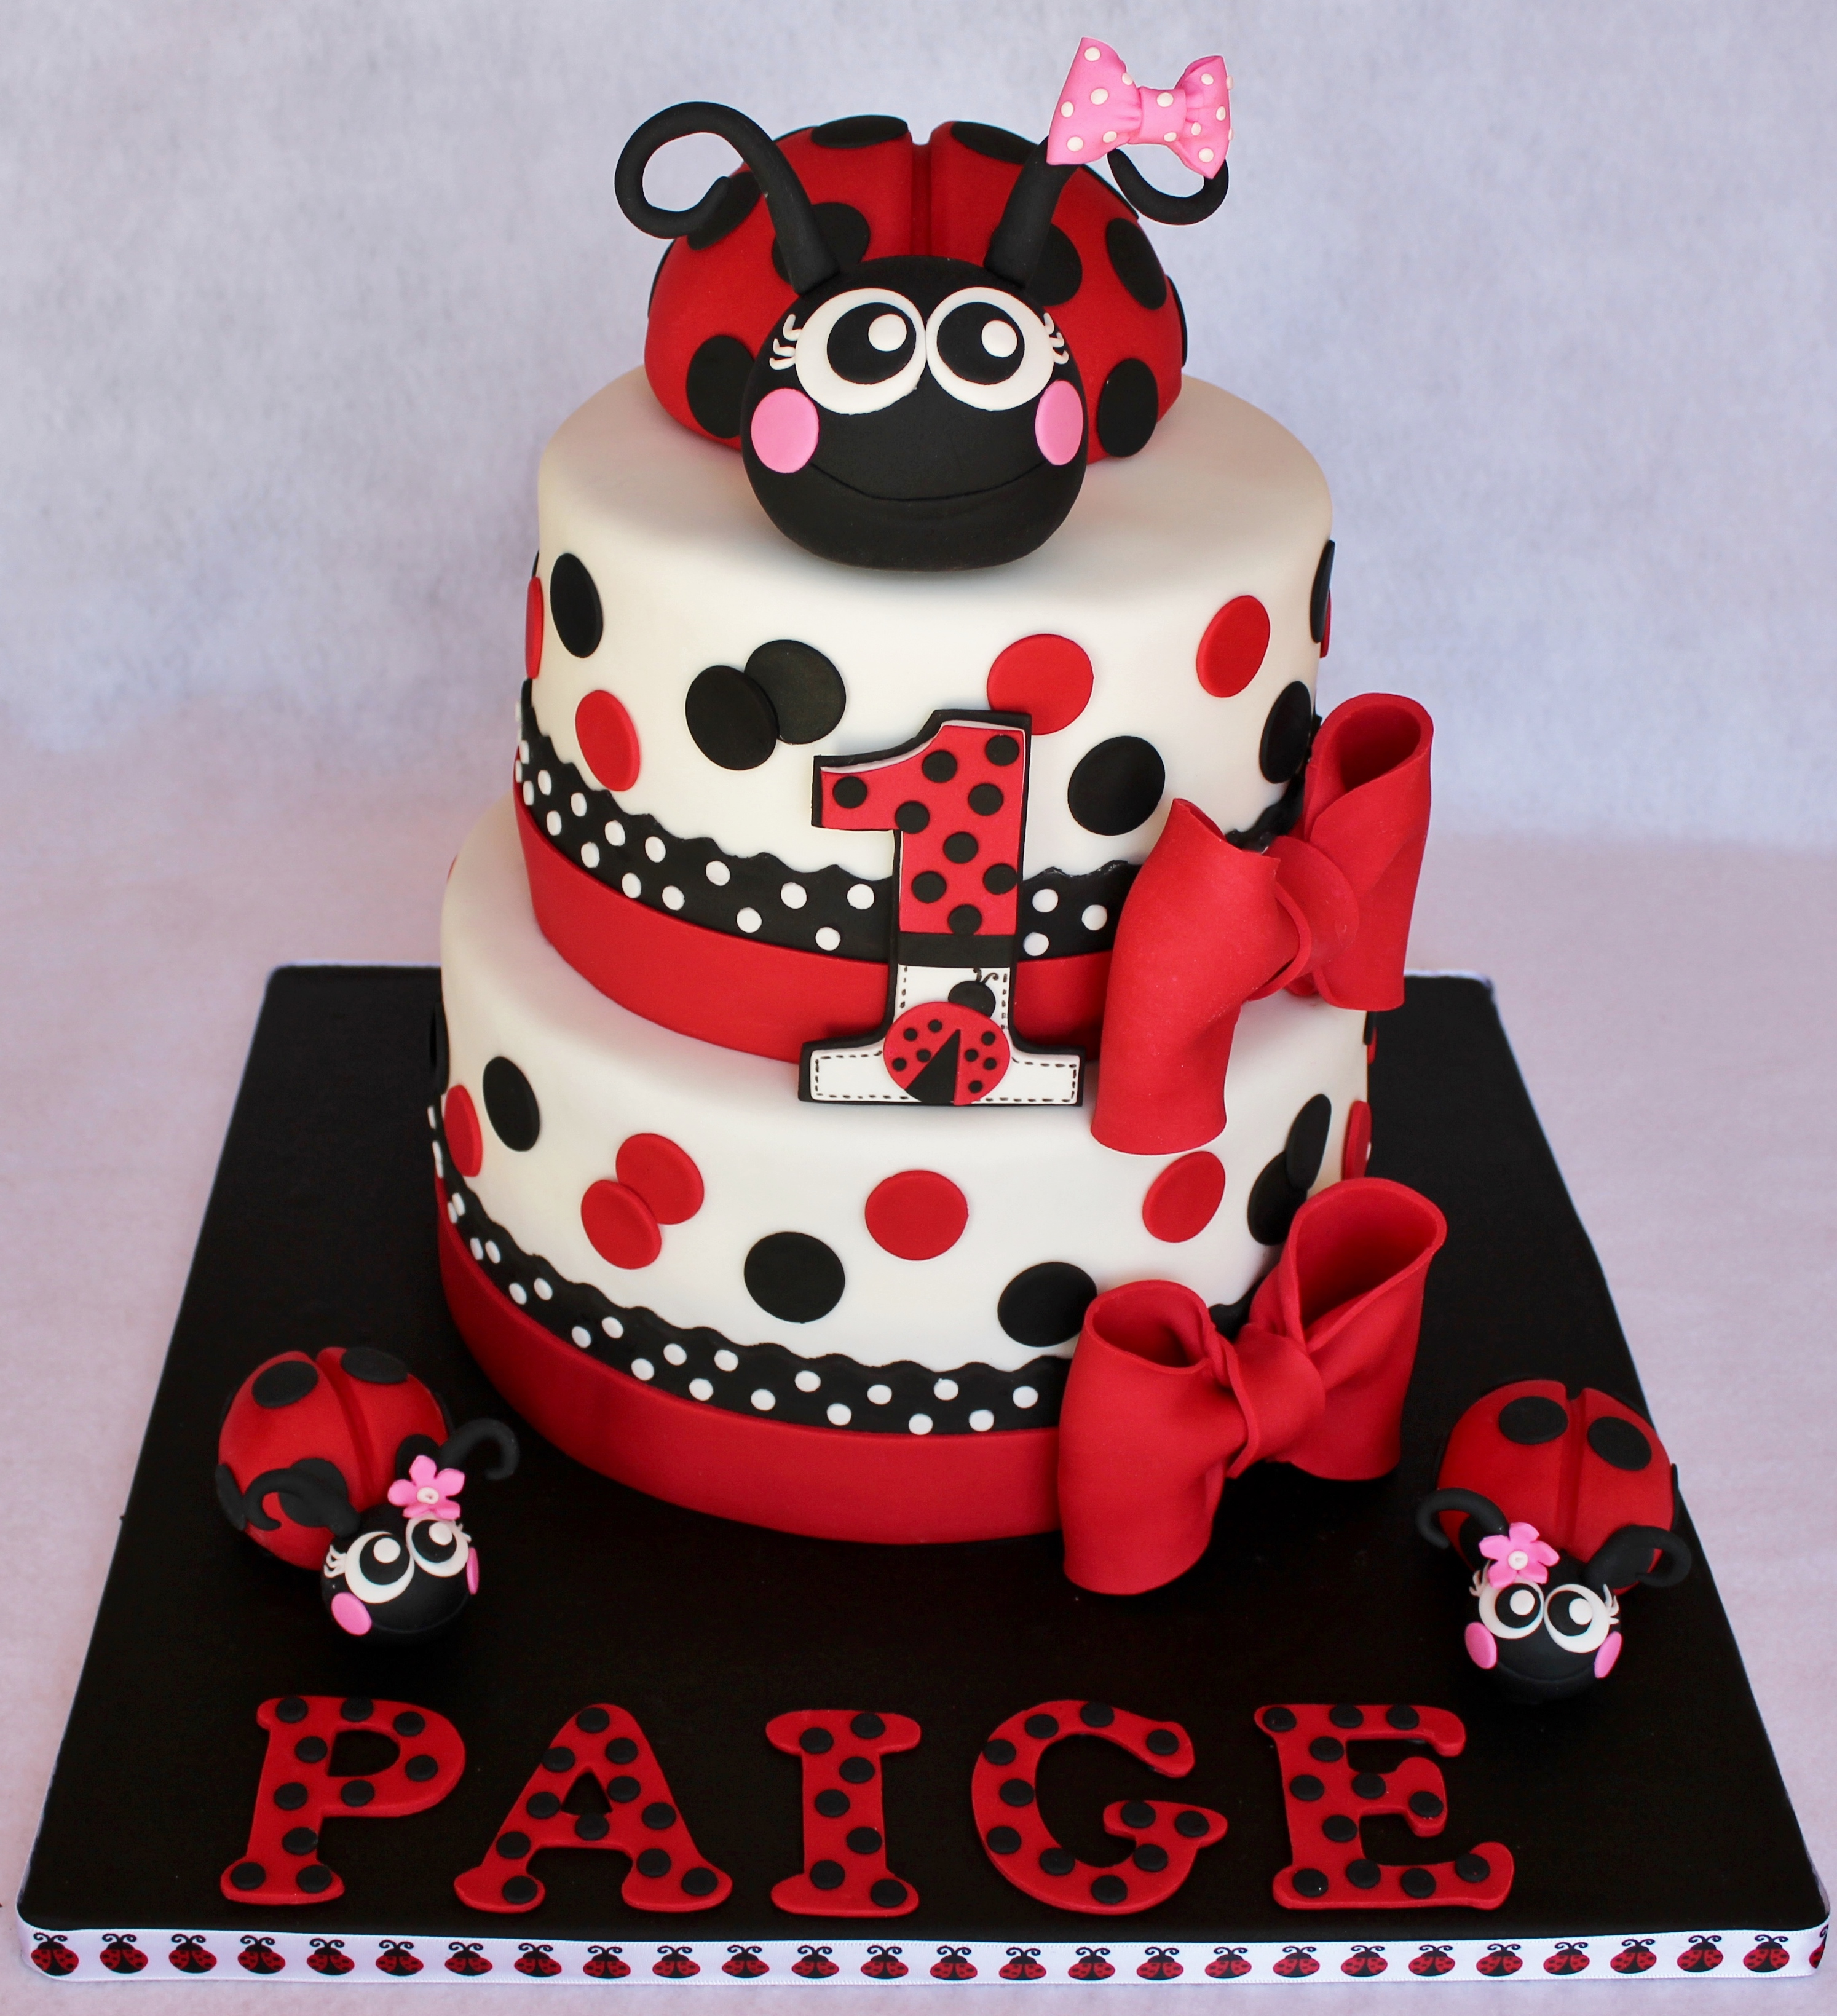 Lady Beetle Cake Toppers